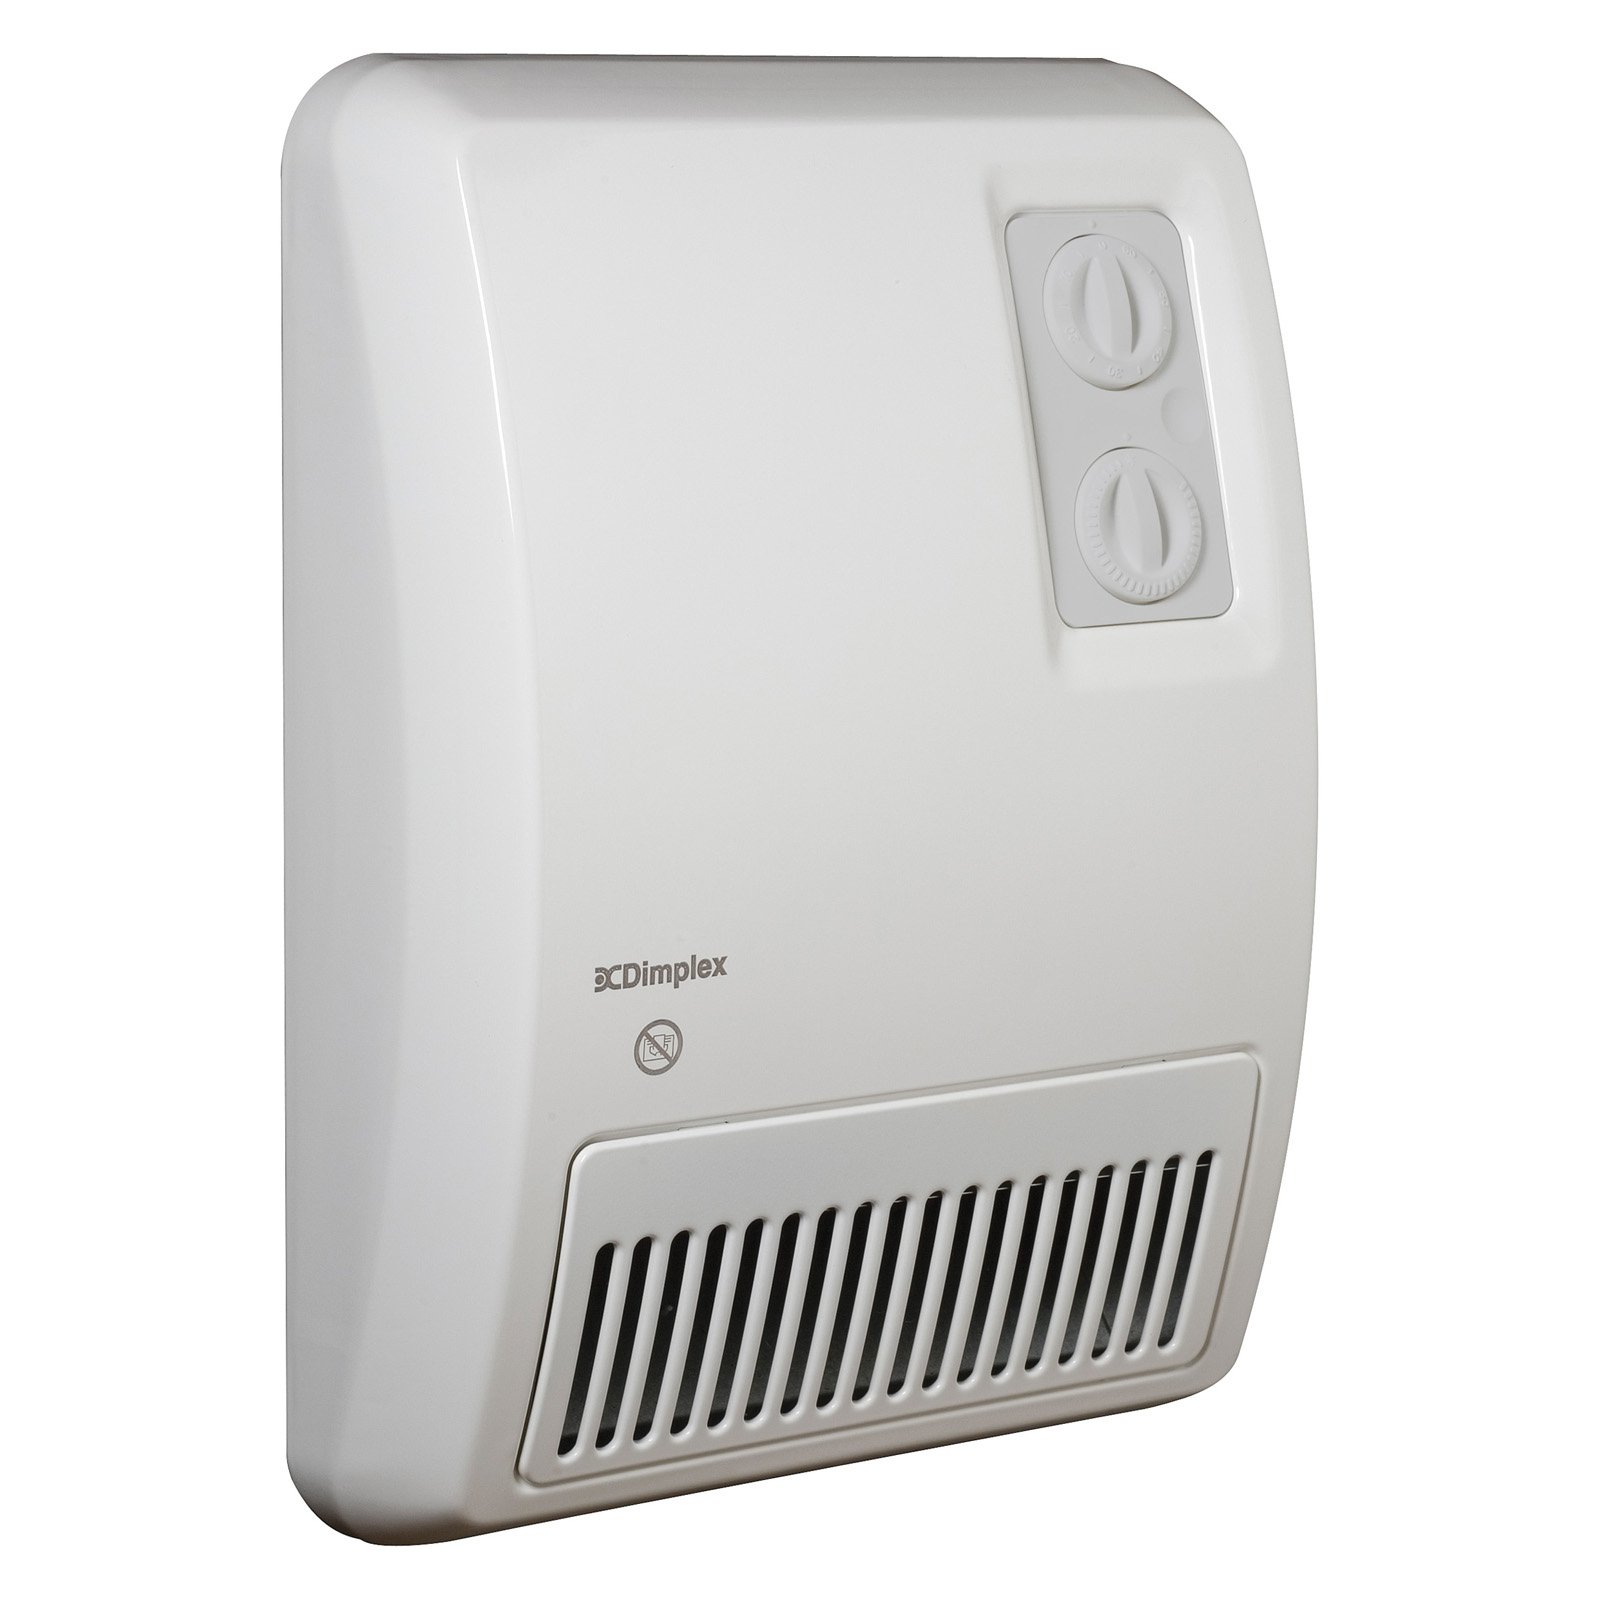 Dimplex Fan Forced Deluxe Wall Mounted Heater for sizing 1600 X 1600